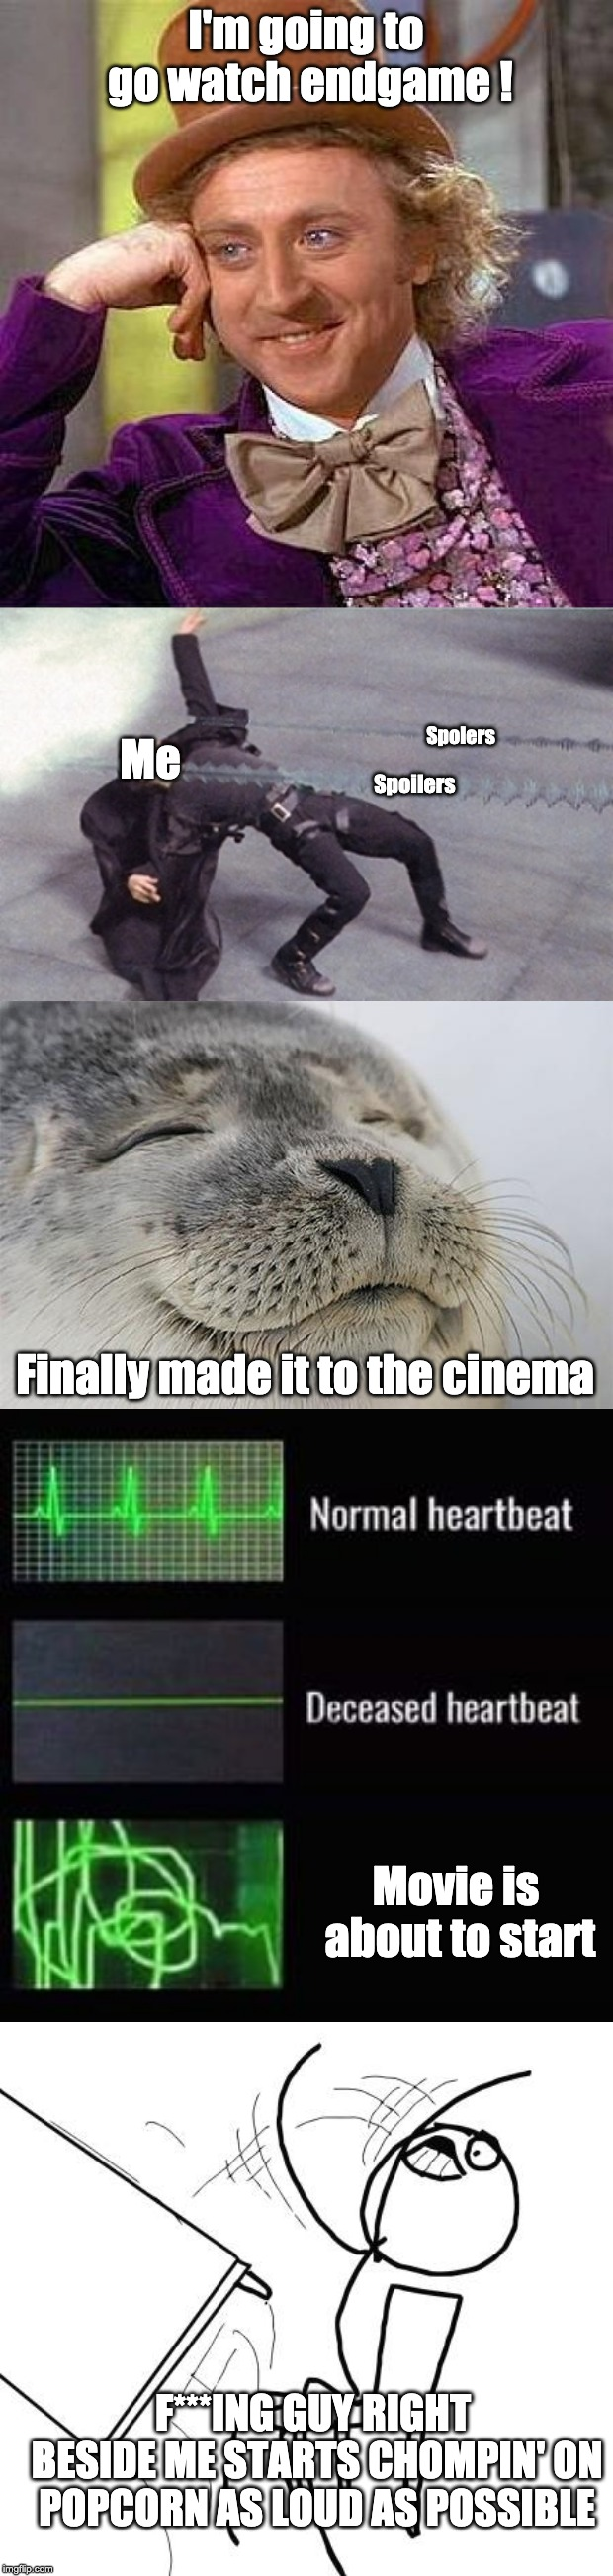 How to go to the movies | I'm going to go watch endgame ! Me Spoilers Spolers Finally made it to the cinema Movie is about to start F***ING GUY RIGHT BESIDE ME STARTS | image tagged in memes,creepy condescending wonka,table flip guy,satisfied seal,neo dodging a bullet matrix,heartbeat rate | made w/ Imgflip meme maker